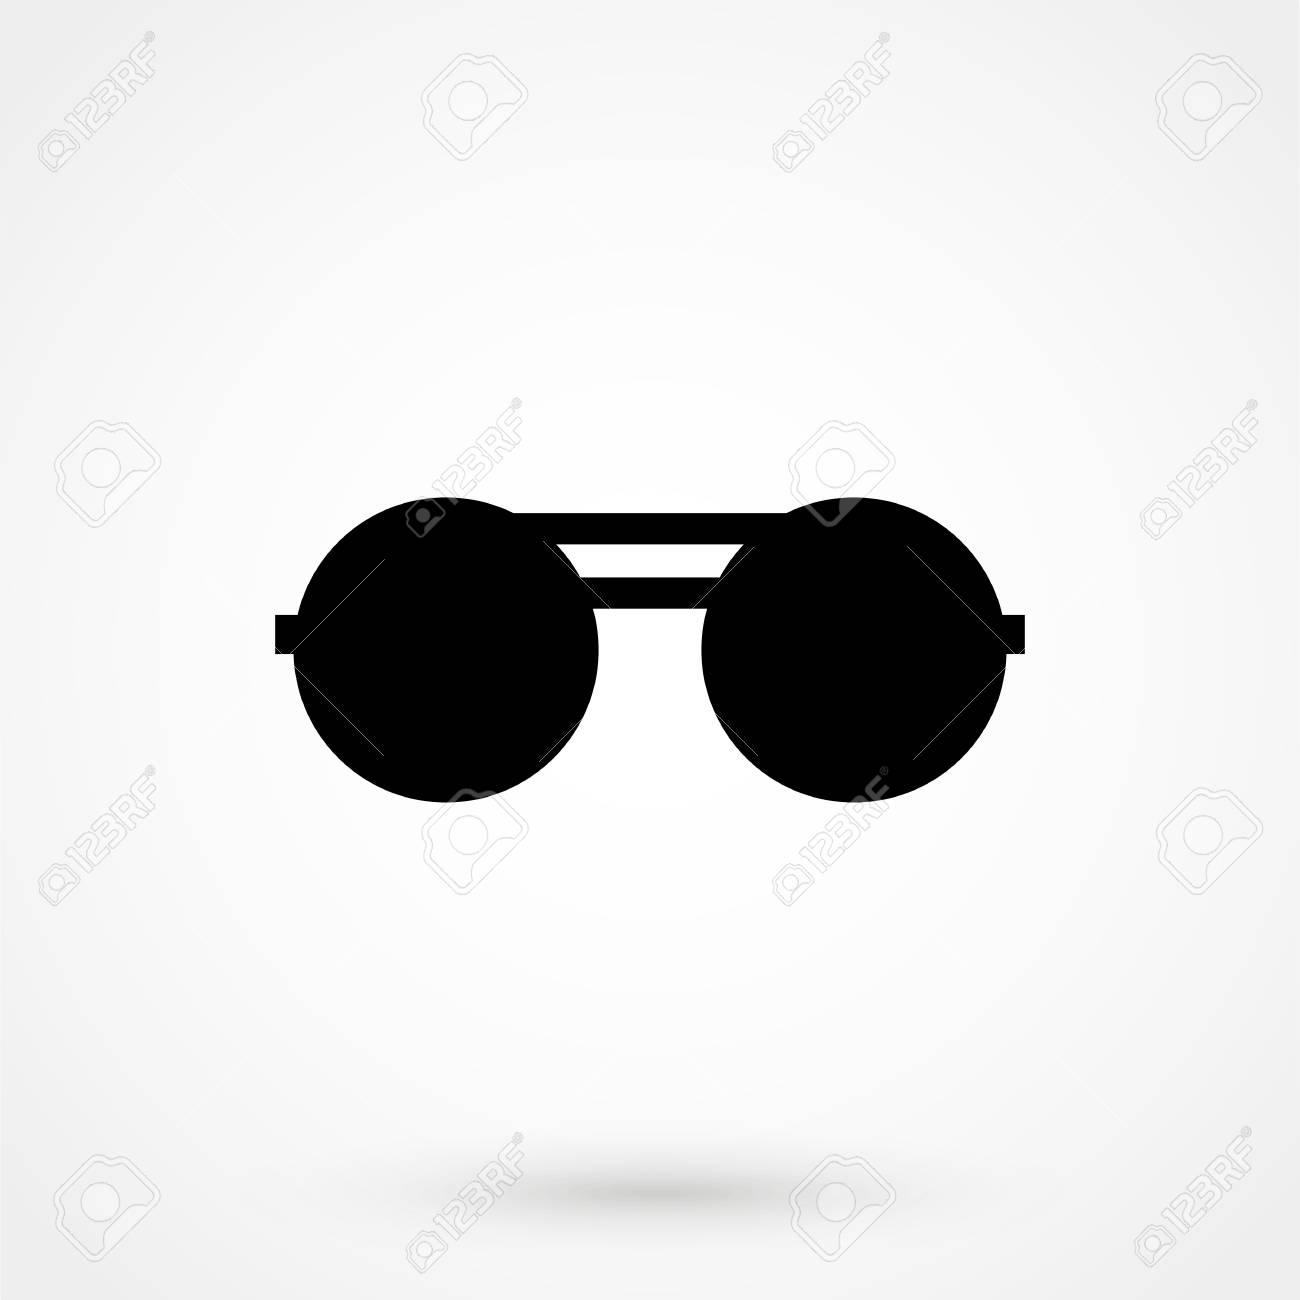 8d8ca569410 Sunglasses Icon Isolated On Background. Modern Flat Pictogram ...